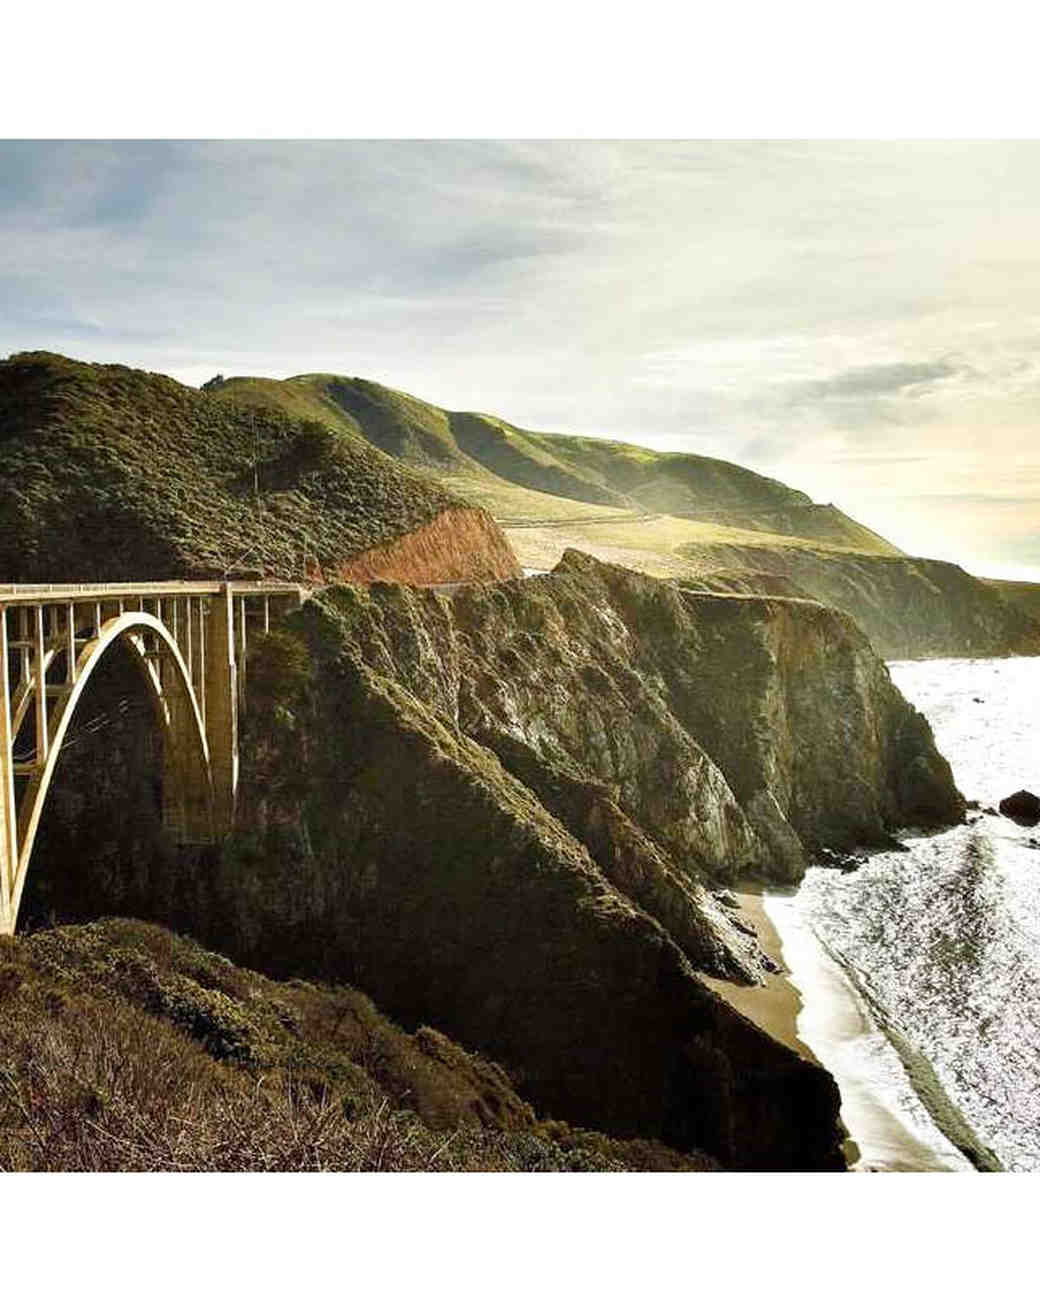 dreamy-drives-bixby-creek-bridge-0216.jpg